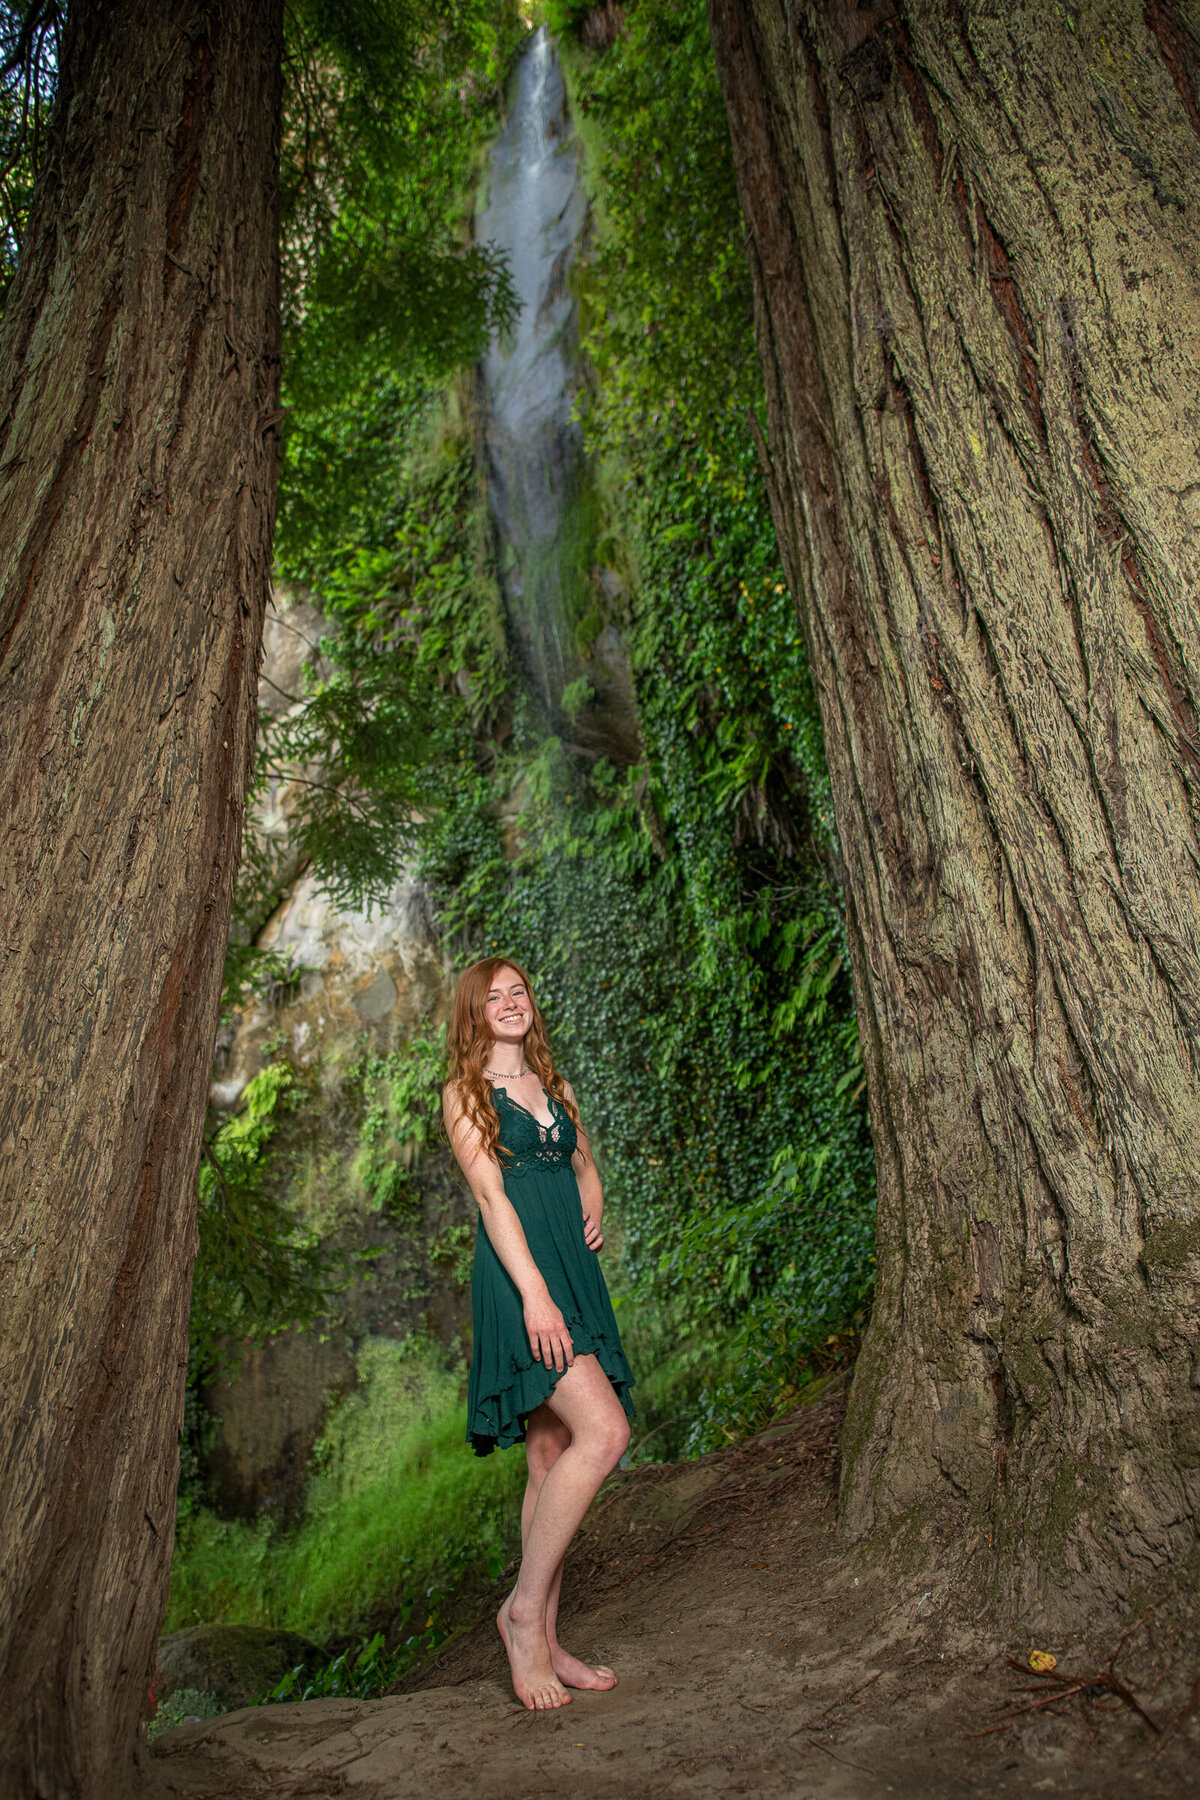 Humboldt-County-Senior-Photographer-Parky's-Pics-river-session-4